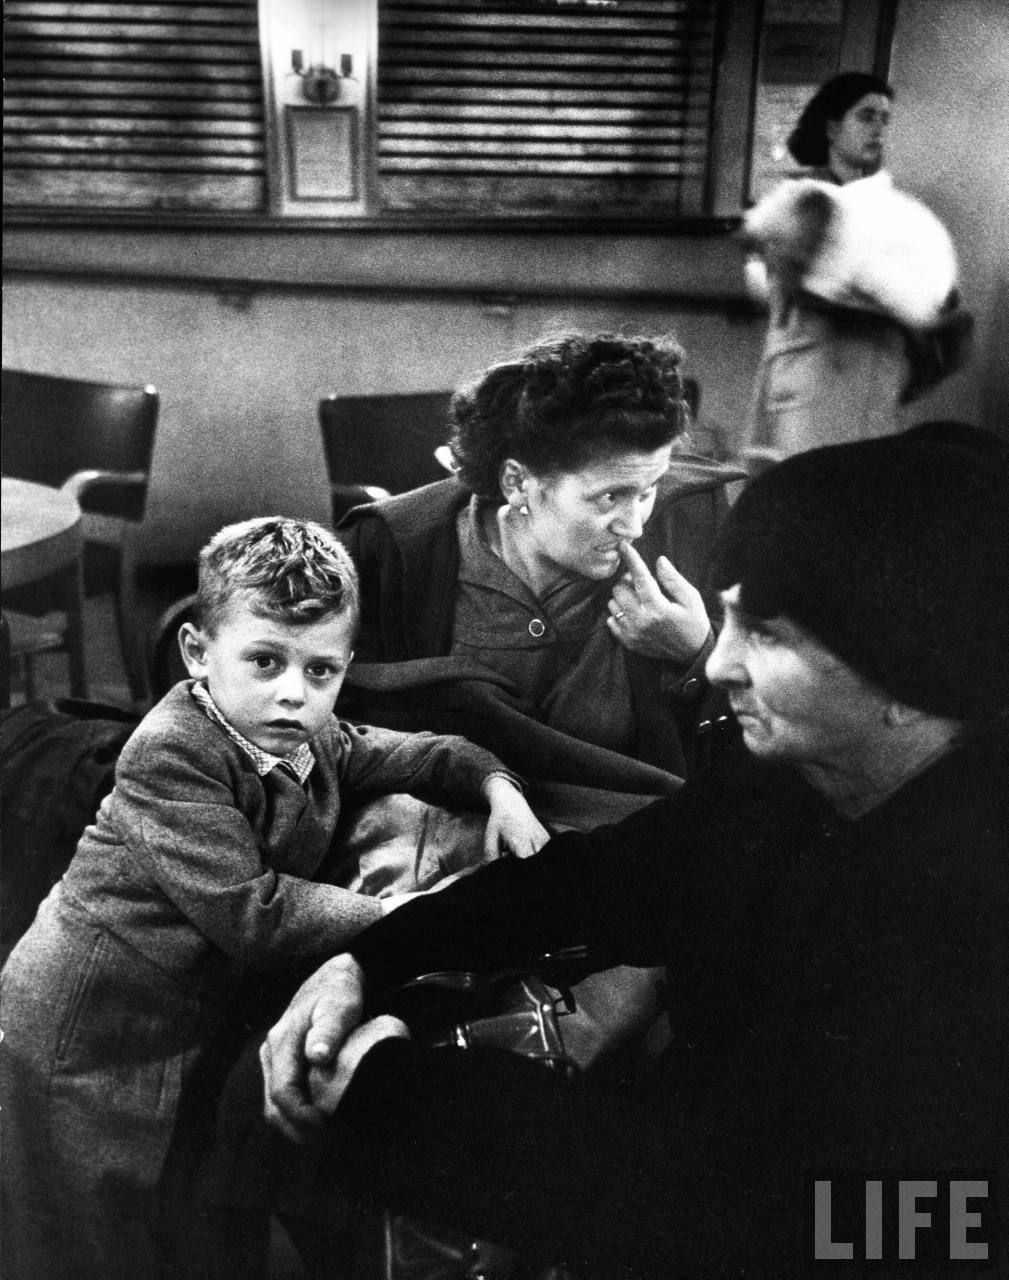 Italian Mother and Child, Ellis Island, New York, 1905, by Lewis Wickes Hine Unless you are full blooded Native American (Indian), you are either an immigrant or descended from immigrants. Description from pinterest.com. I searched for this on bing.com/images